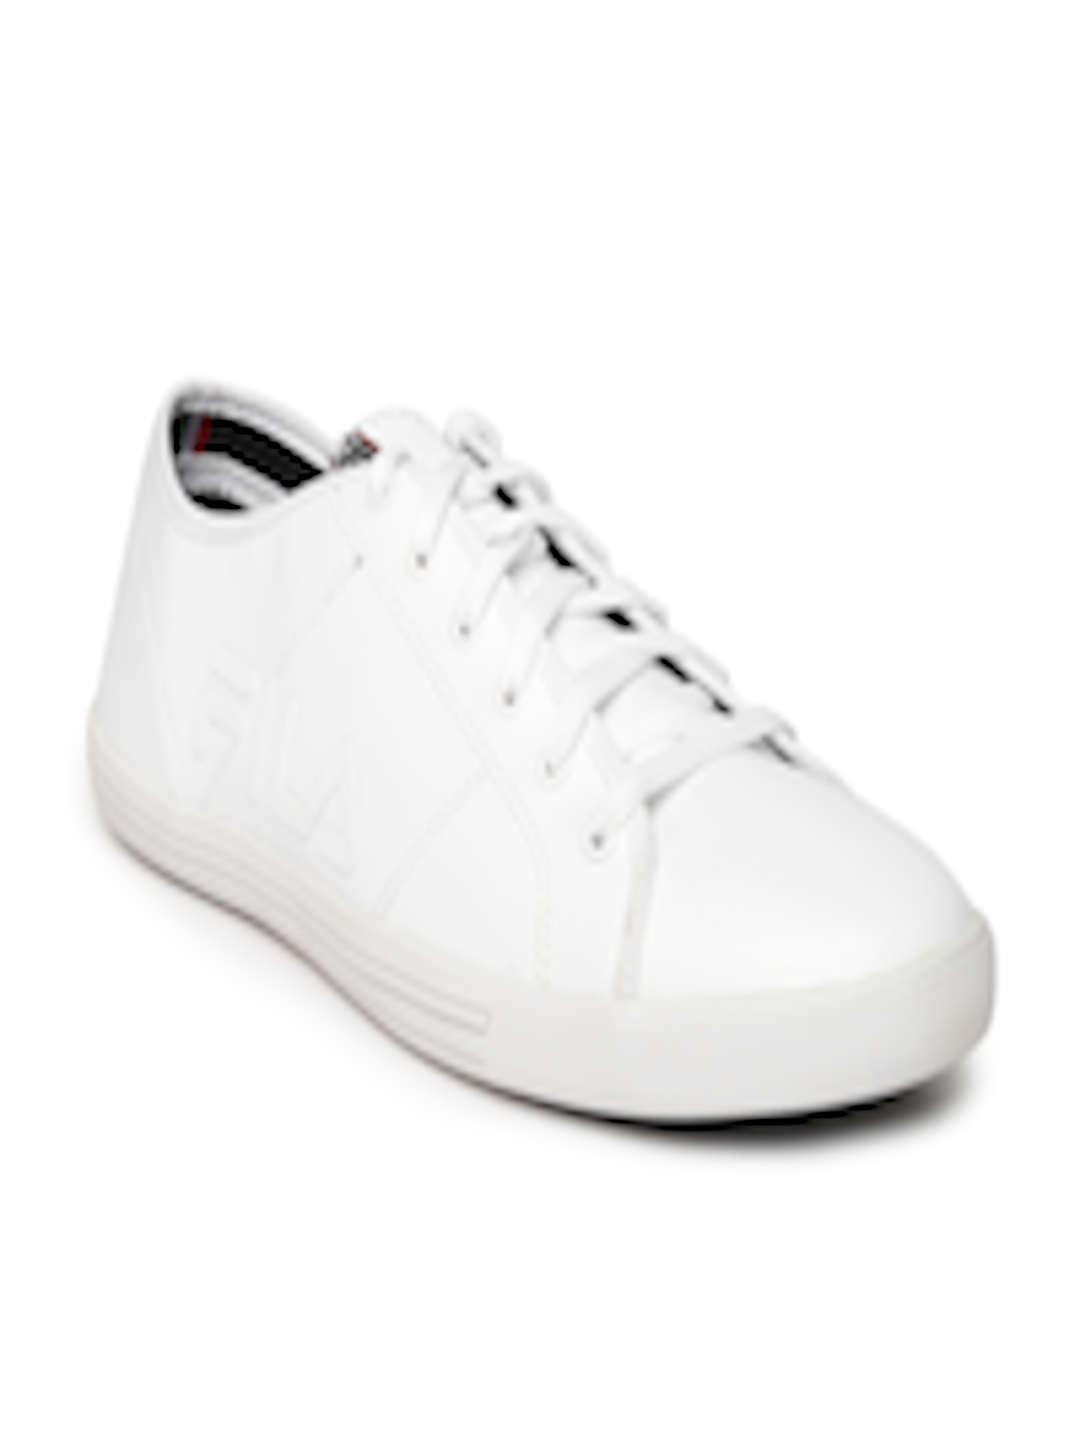 3b40a3b15157 Buy FILA Men White Solid Pride Sneakers - Casual Shoes for Men 1618135